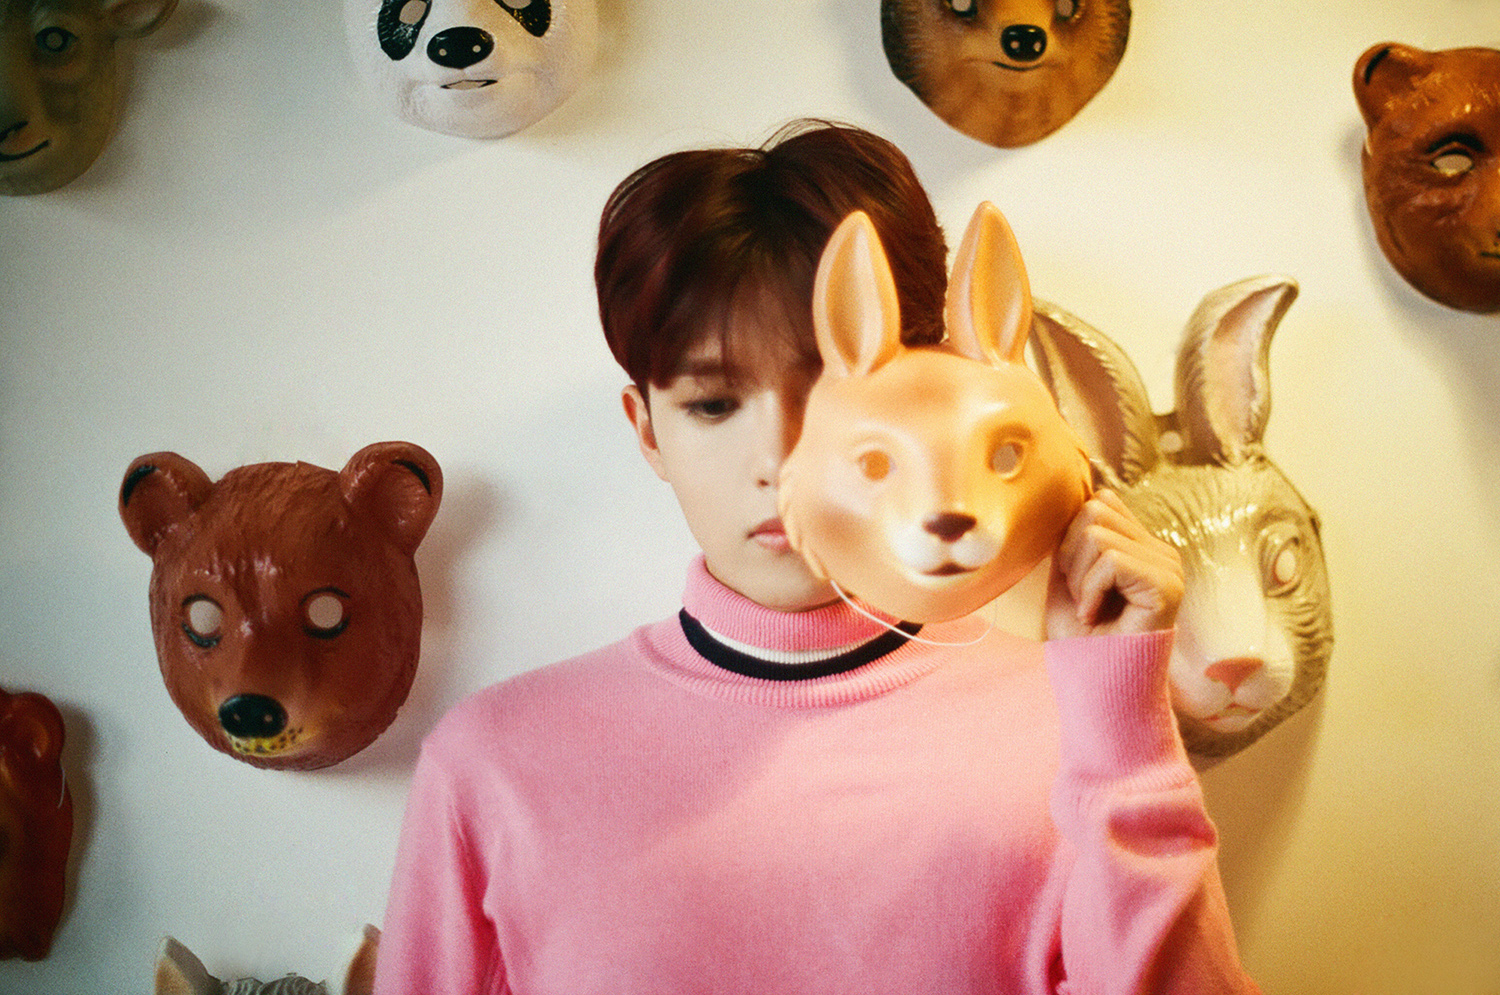 super junior s ryeowook releases more teaser images for the super junior s ryeowook releases more teaser images for the little prince